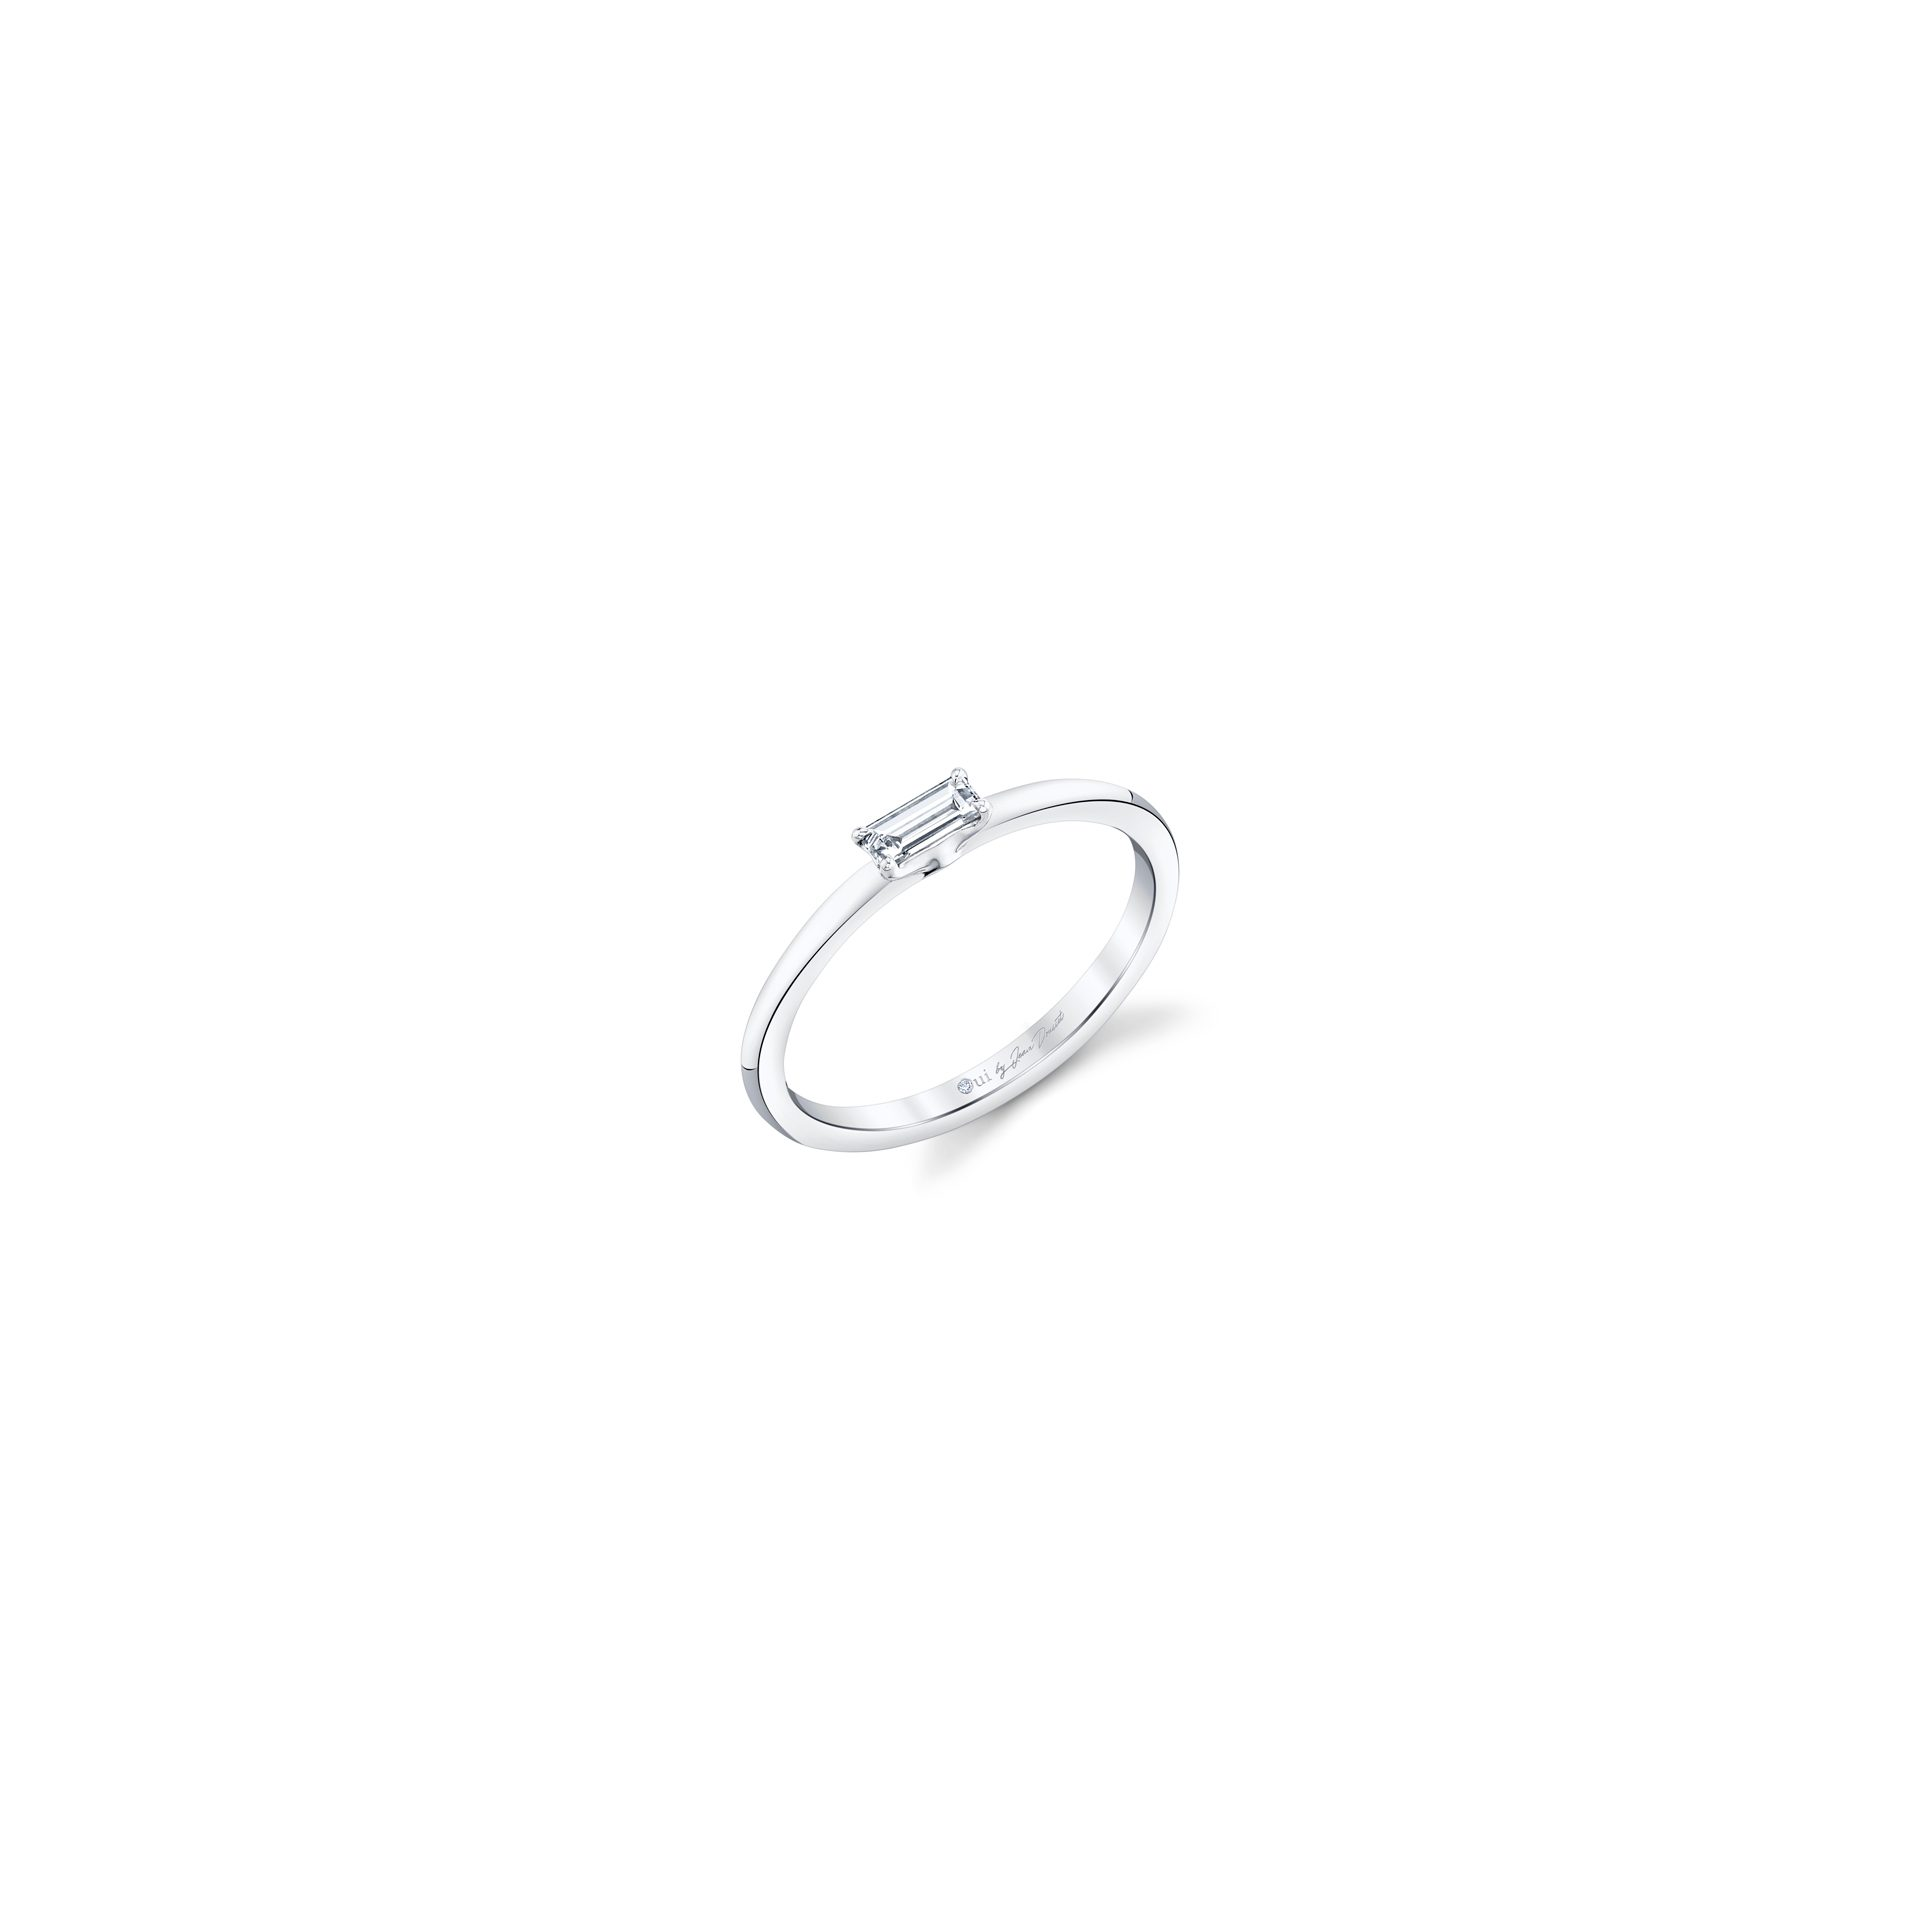 La Petite Baguette Diamond Wedding Band in 18k White Gold Standing View by Oui by Jean Dousset